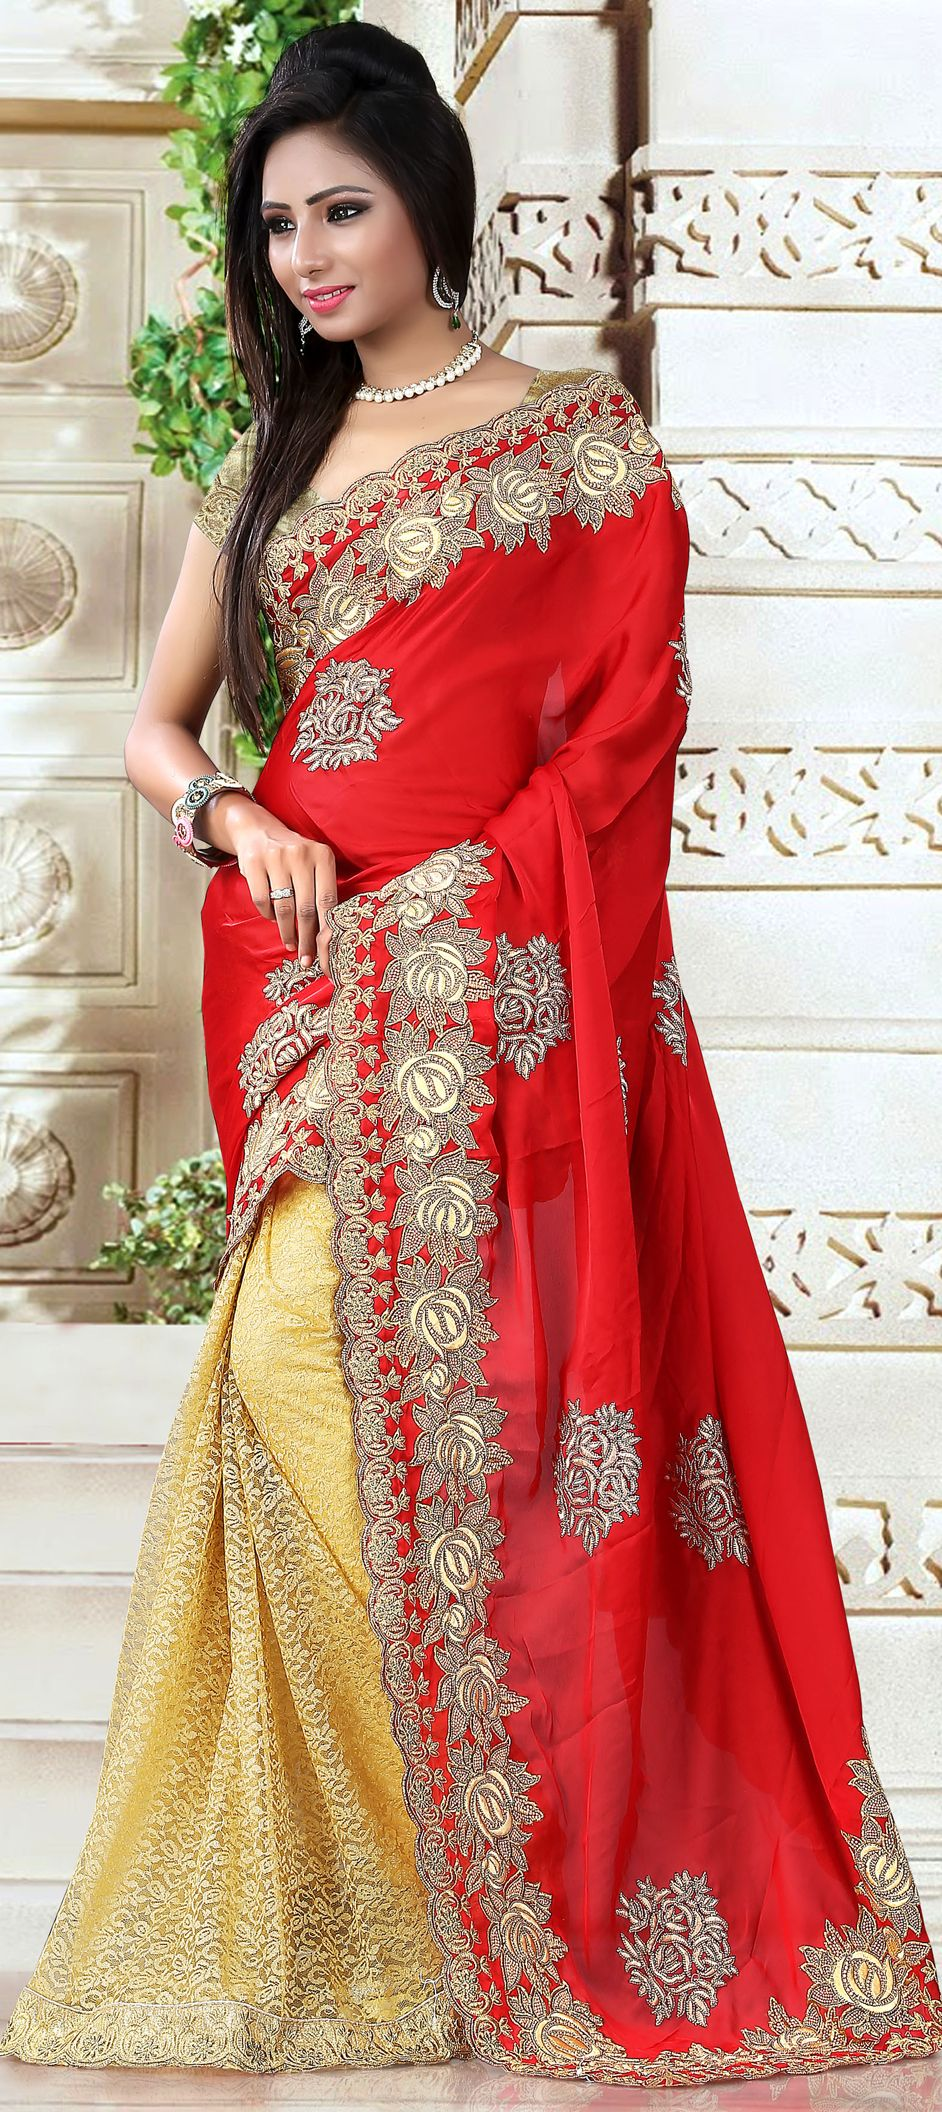 169821: Gold, Red and Maroon color family Embroidered Sarees, Party ...